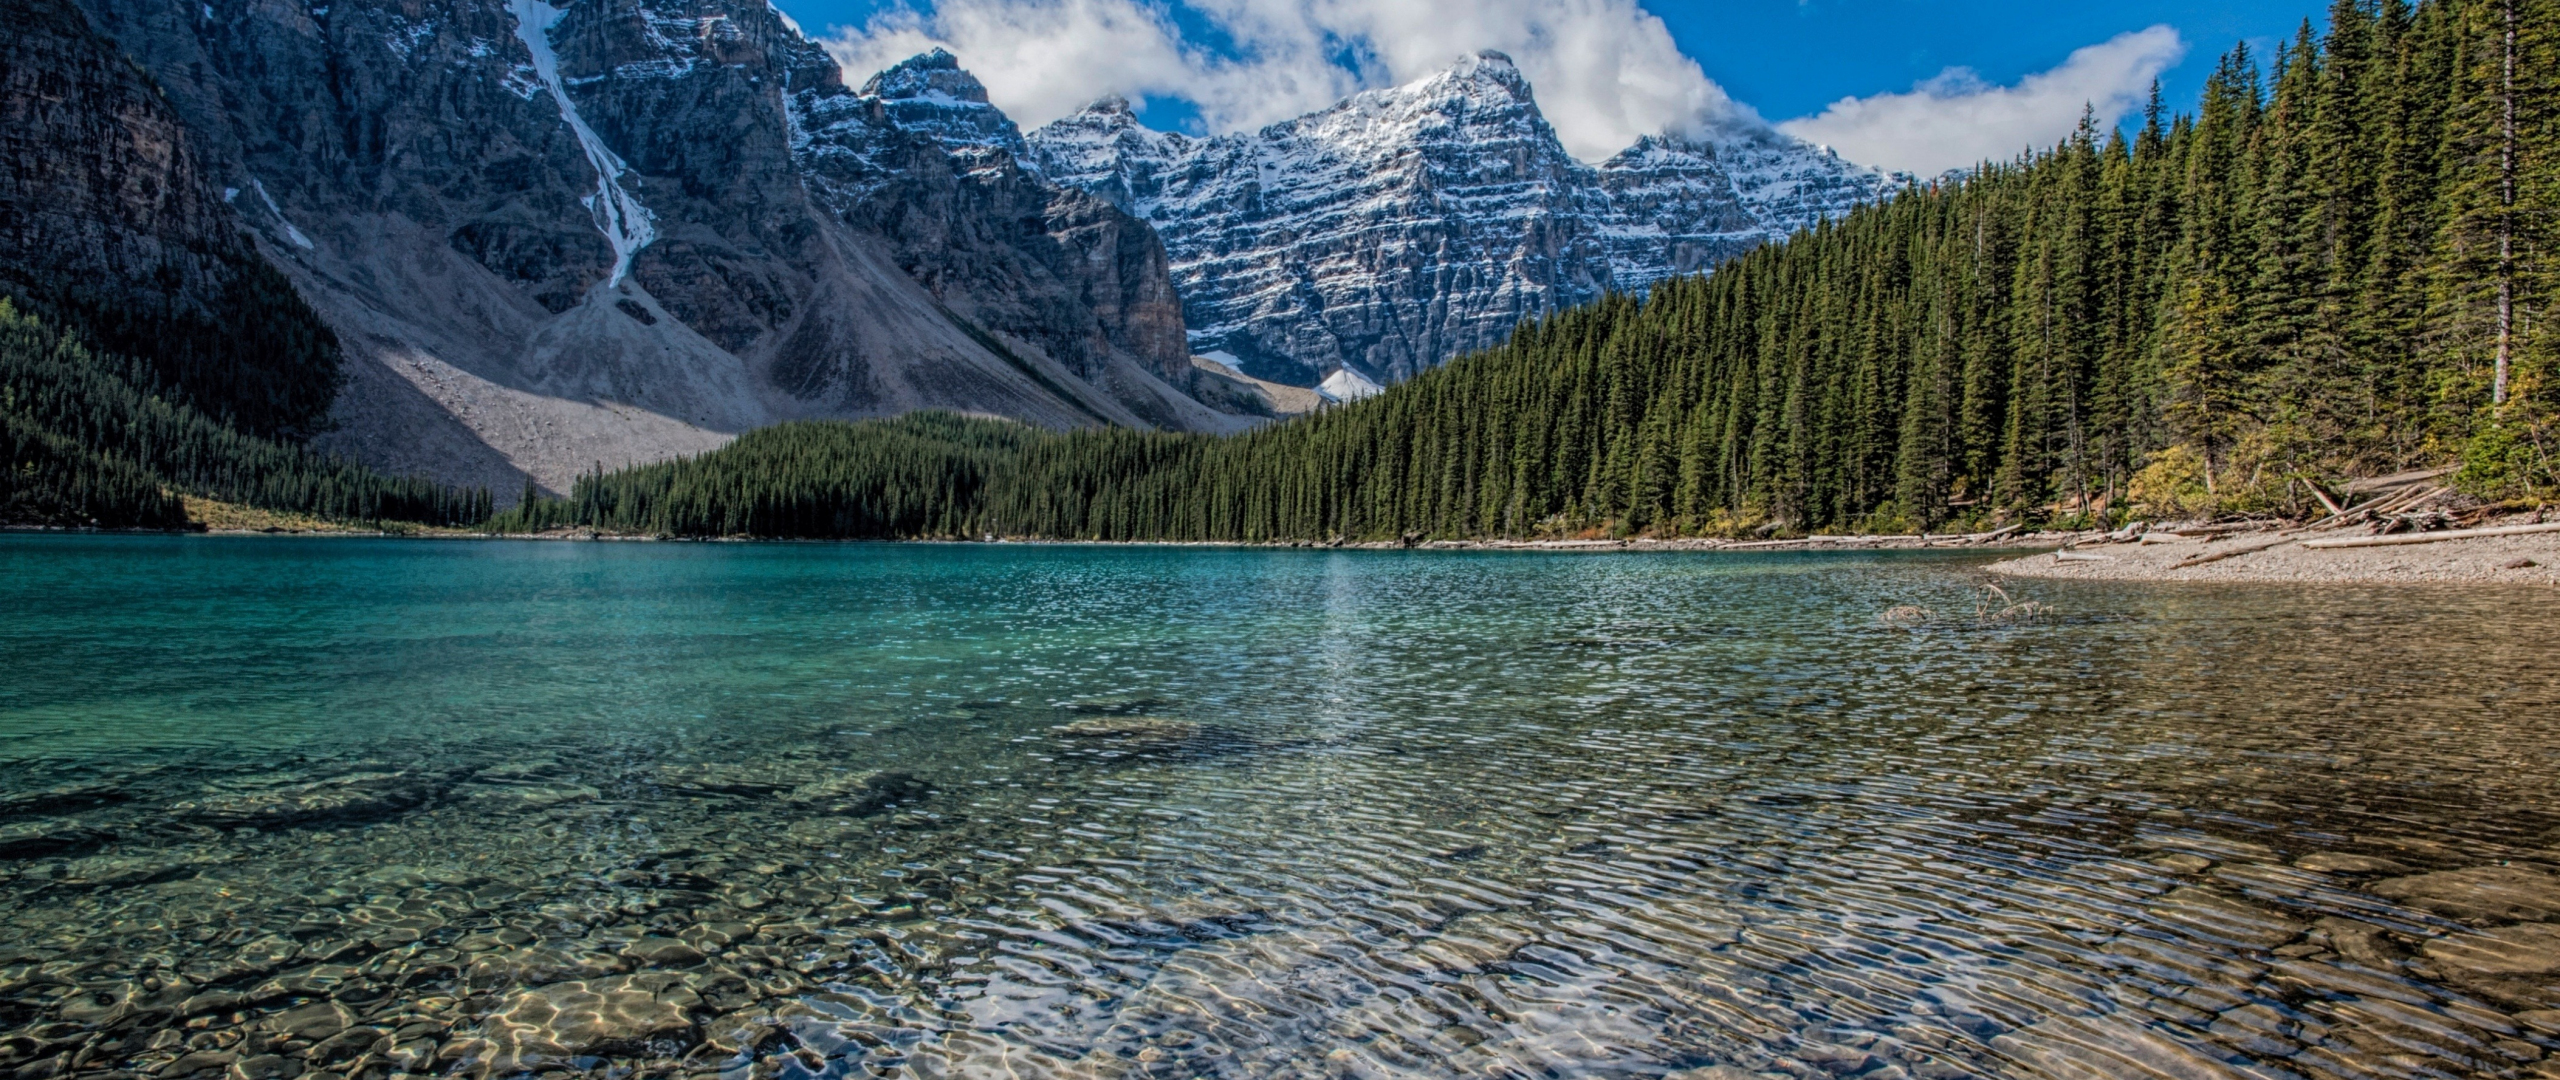 download 2560x1080 wallpaper clean lake  mountains range  trees  nature  dual wide  widescreen